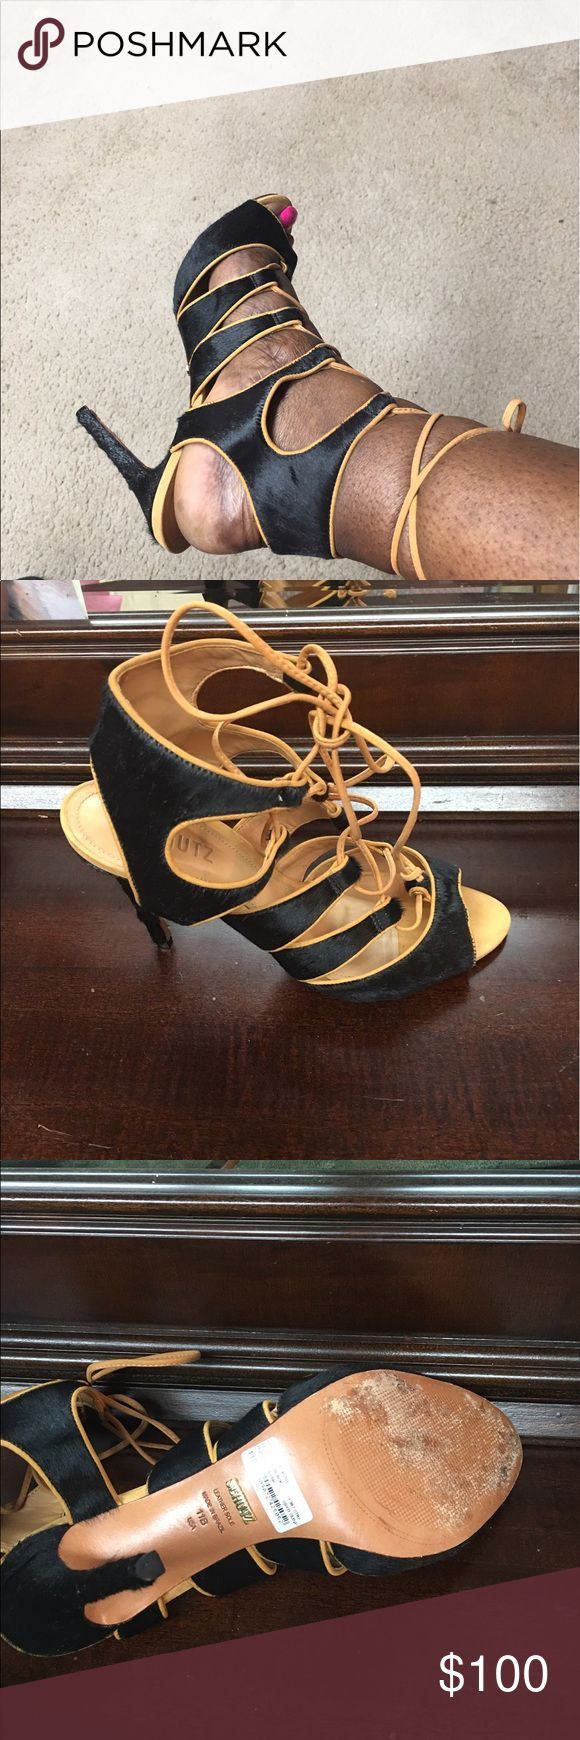 SCHUTZ BLACK HIGH HEEL SANDAL SIZE 11 BLACK AND TAN HIGH HEEL SANDALS IN EXCELLENT CONDITION WORE IT ONE TIME. SCHUTZ Shoes Sandals